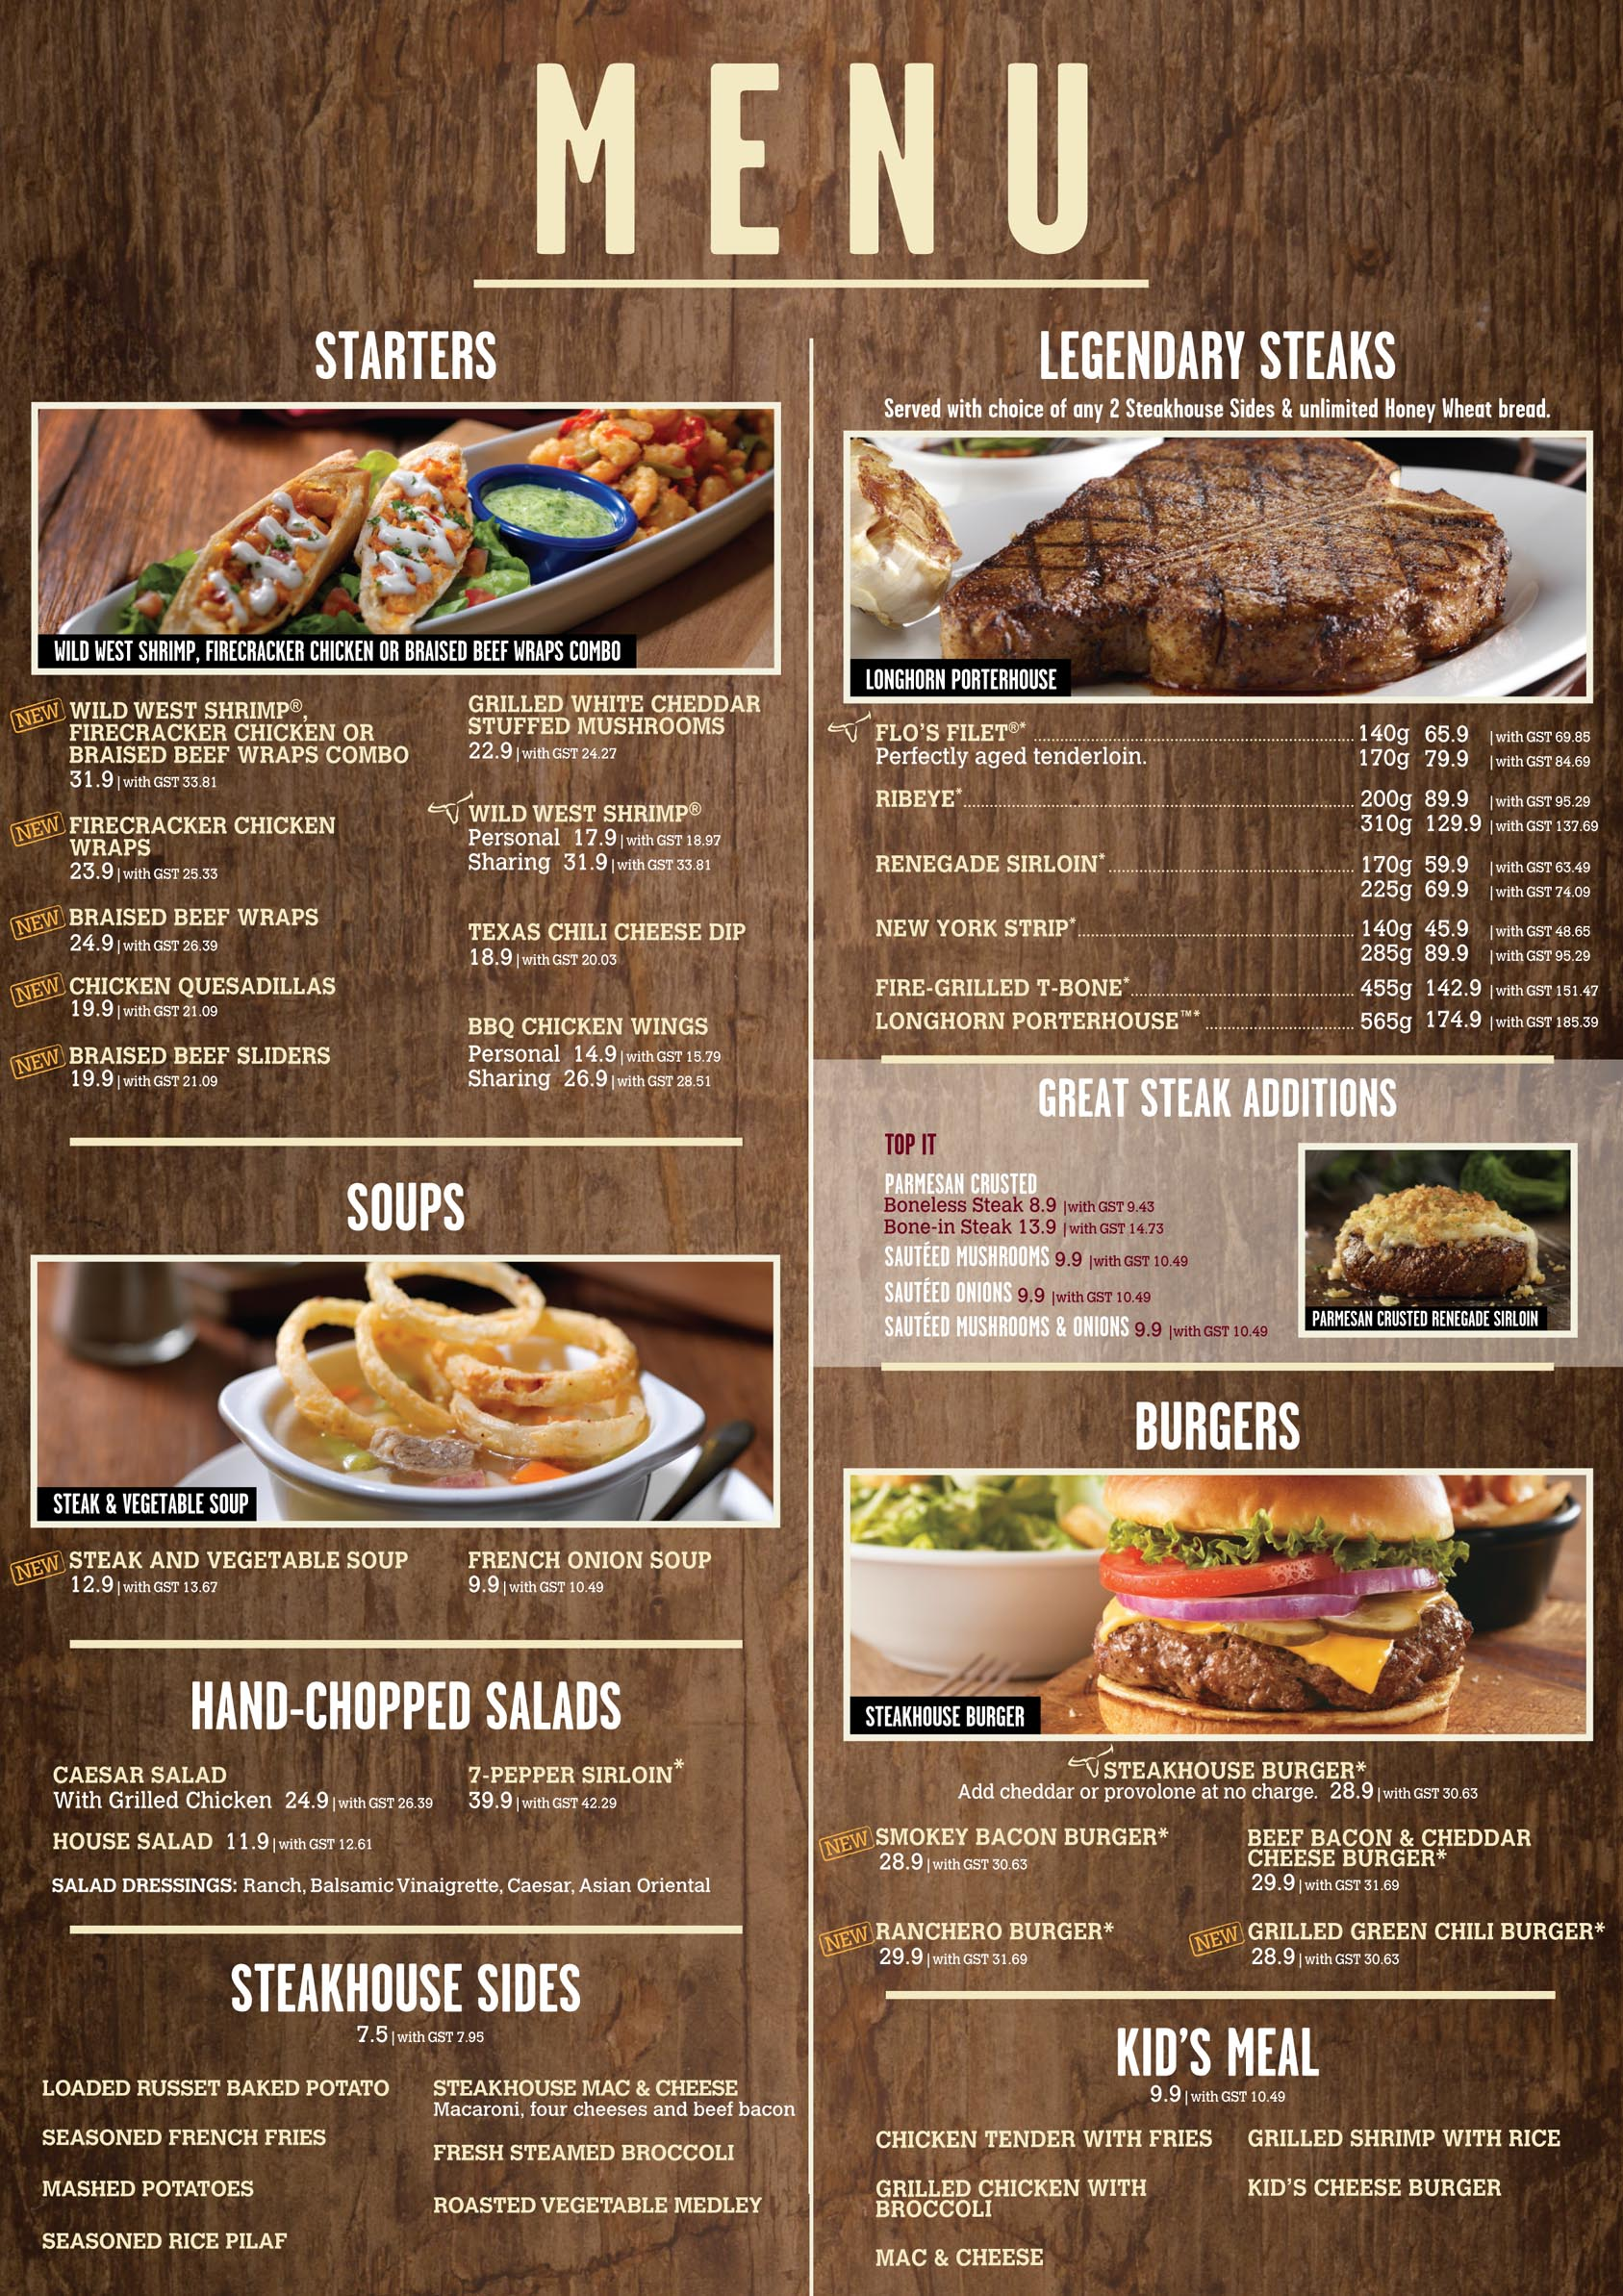 Keto menu at longhorn steakhouse